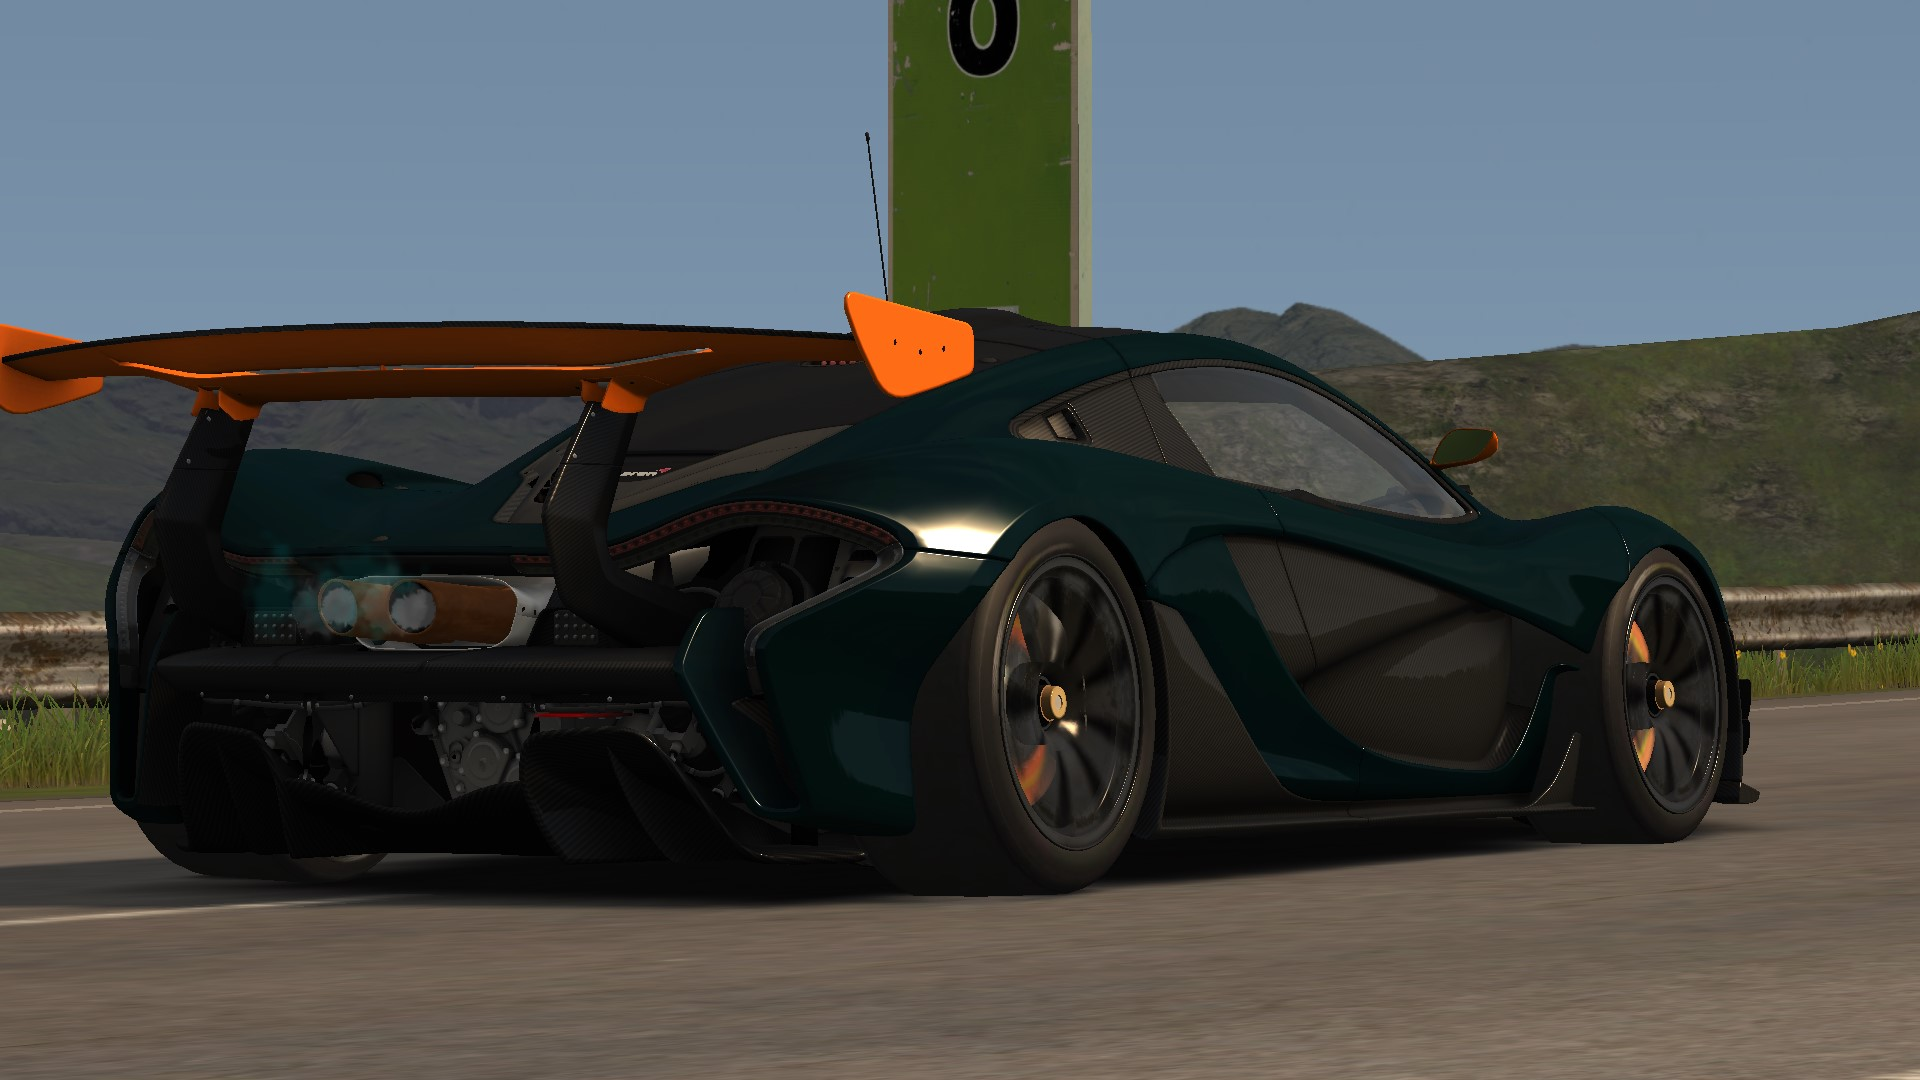 Screenshot_ks_mclaren_p1_gtr_ks_highlands_8-12-117-16-16-11.jpg